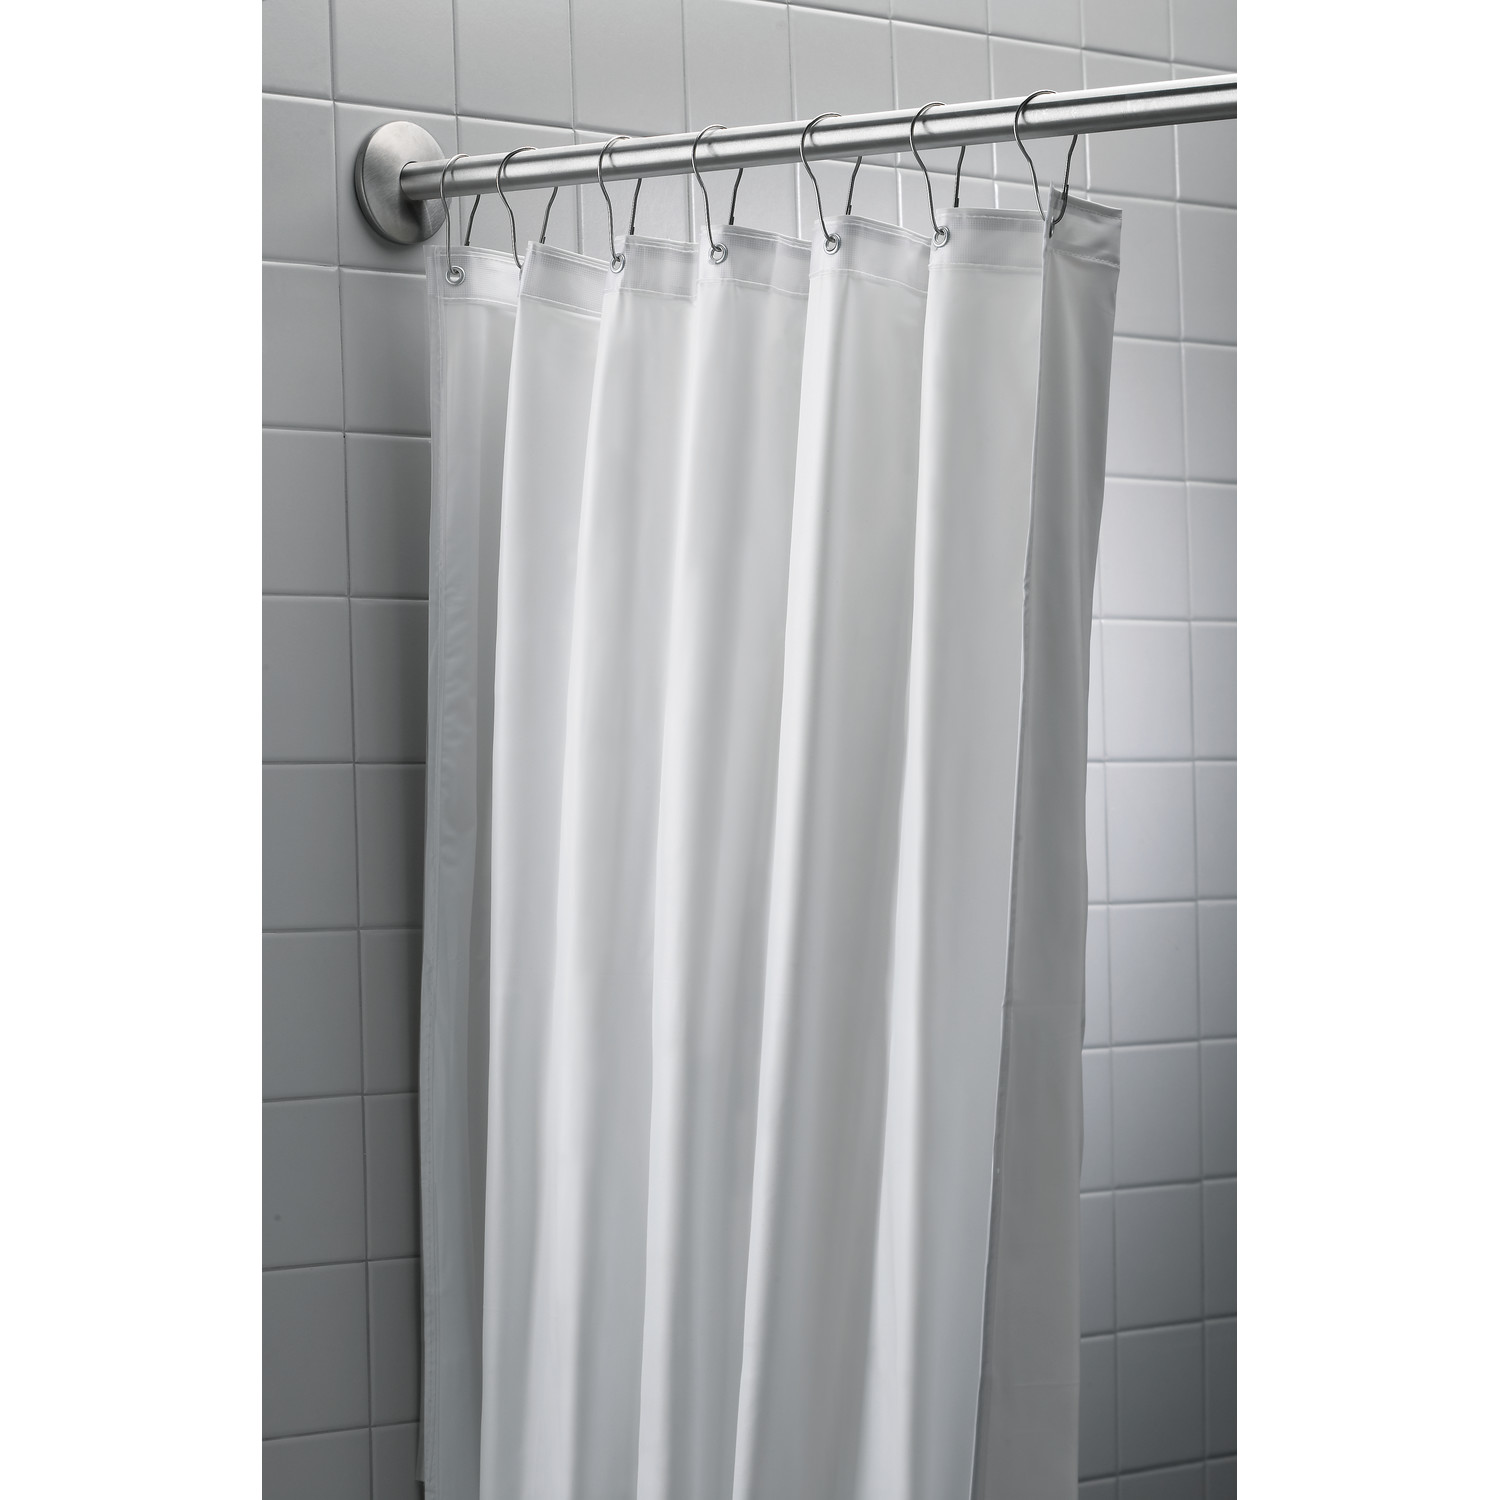 "Bradley 9537-8072 White Antimicrobial Shower Curtain 80"" x 72"""